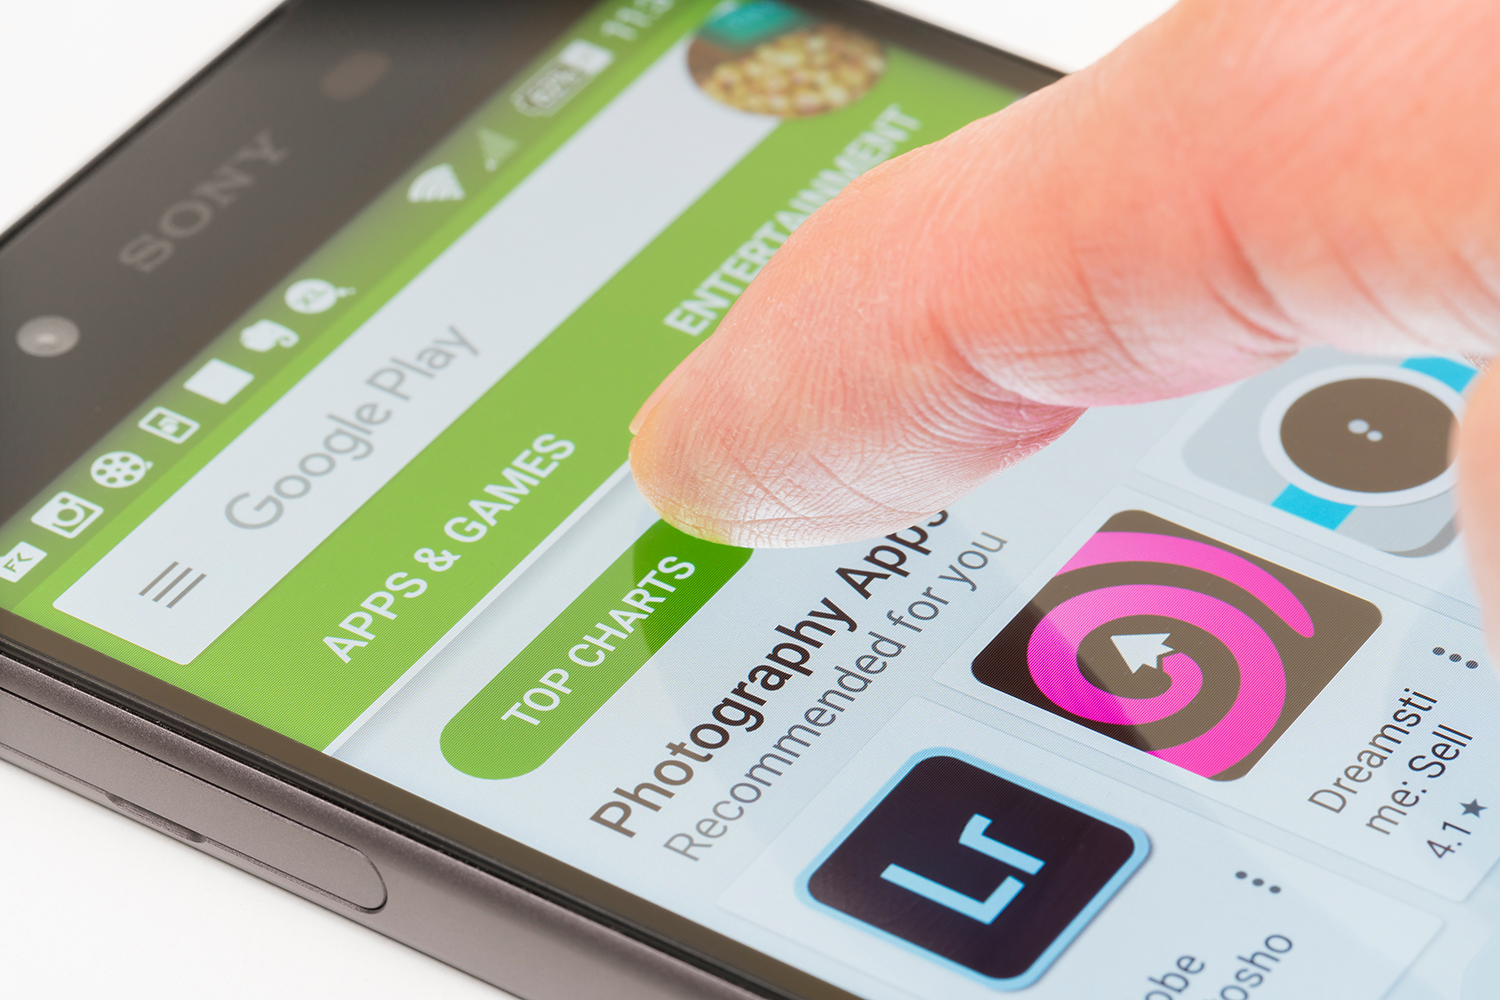 Android Apps On Google Play: Google Play App Signing Reduces The Size Of Apps, And